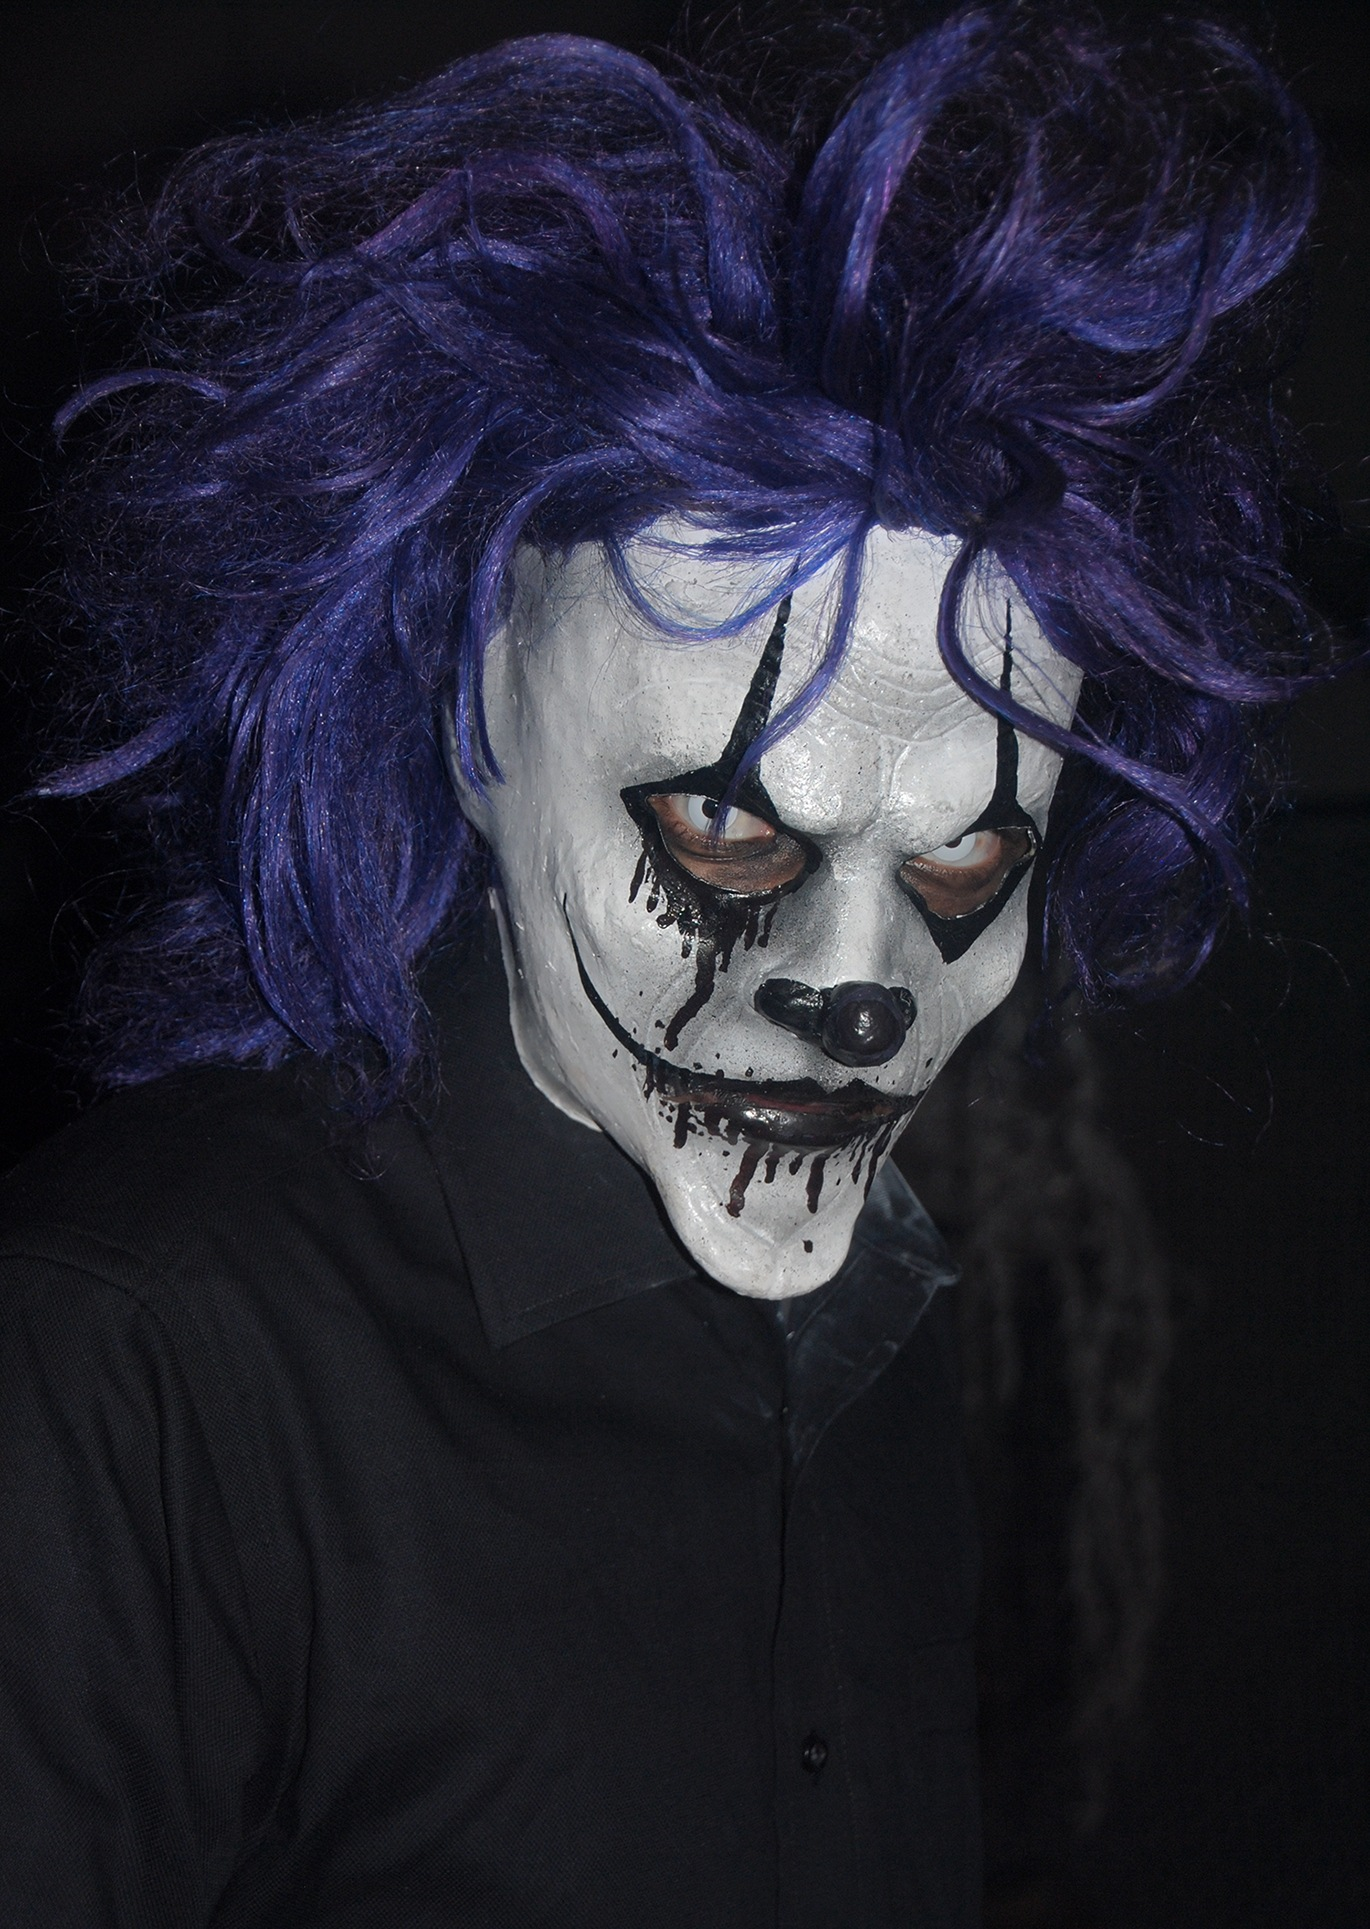 Creepy clown mask by Lormet-Images